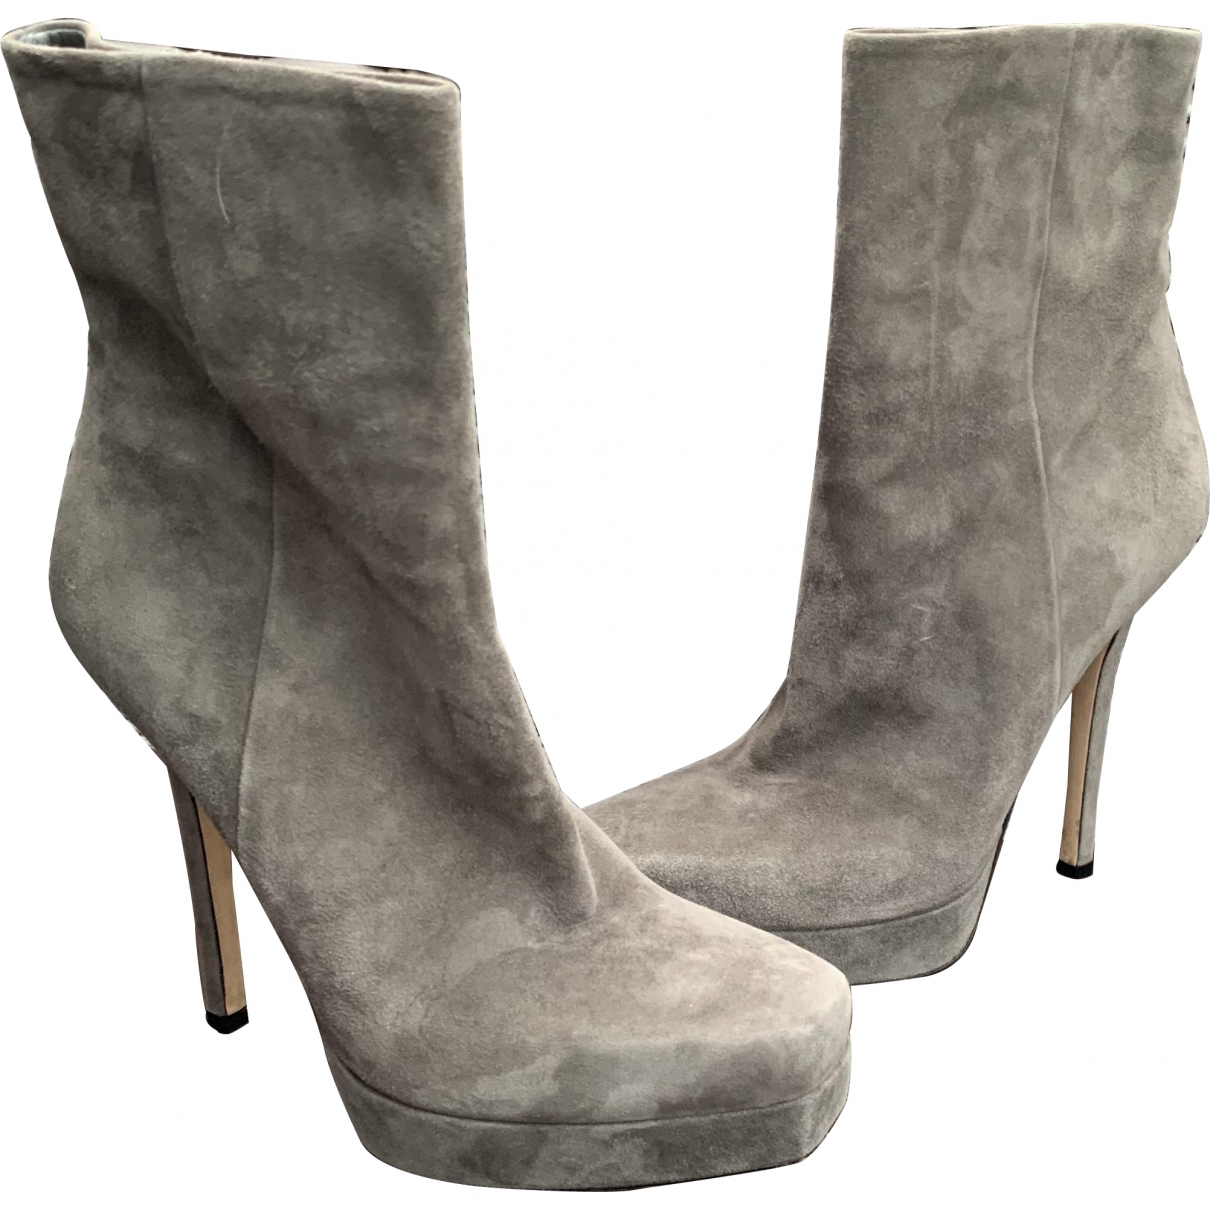 Gucci \N Grey Suede Ankle boots for Women 39 EU